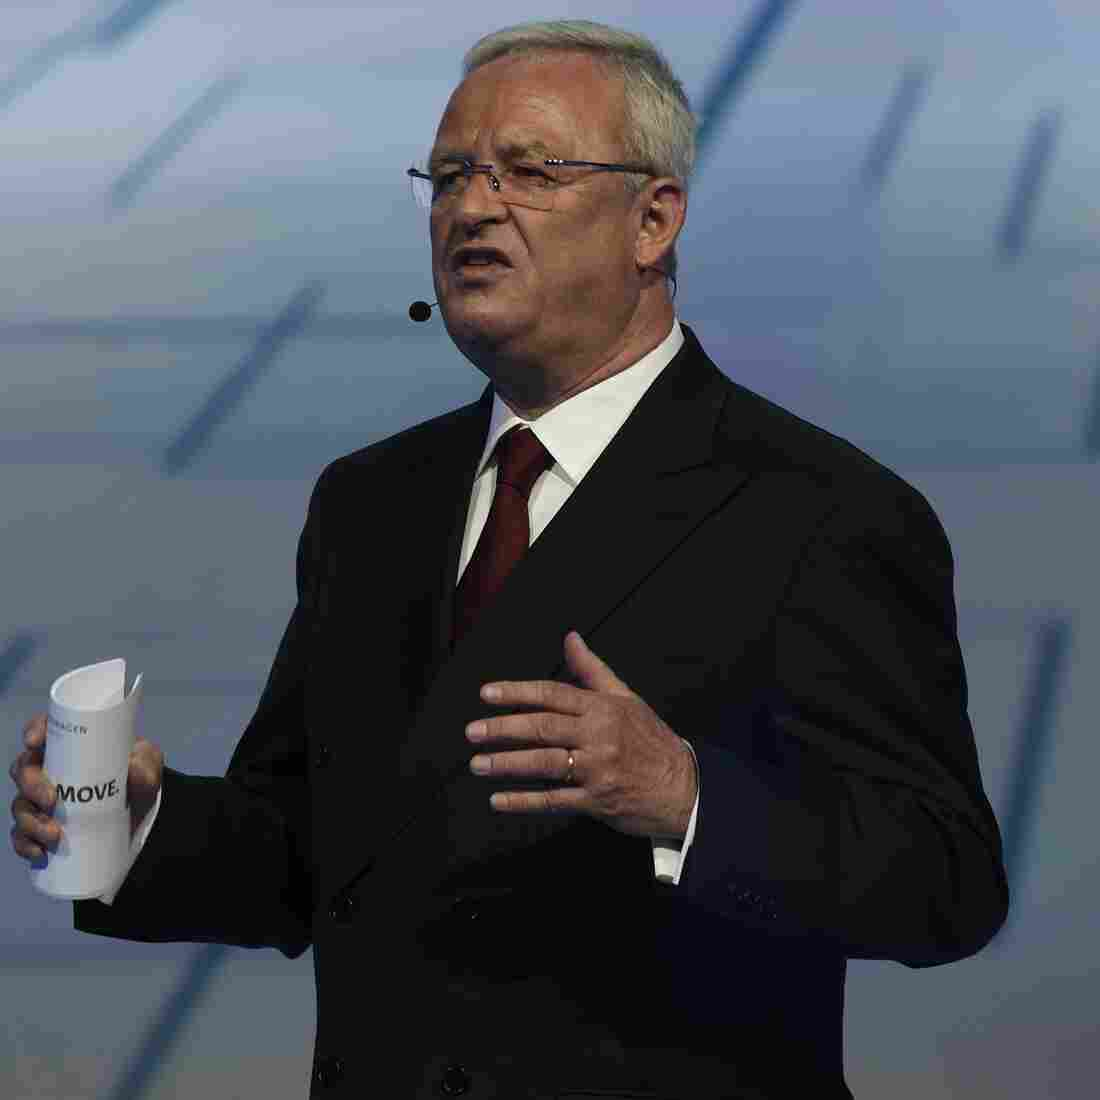 Volkswagen CEO Resigns, Saying He's 'Shocked' By Emissions Scandal